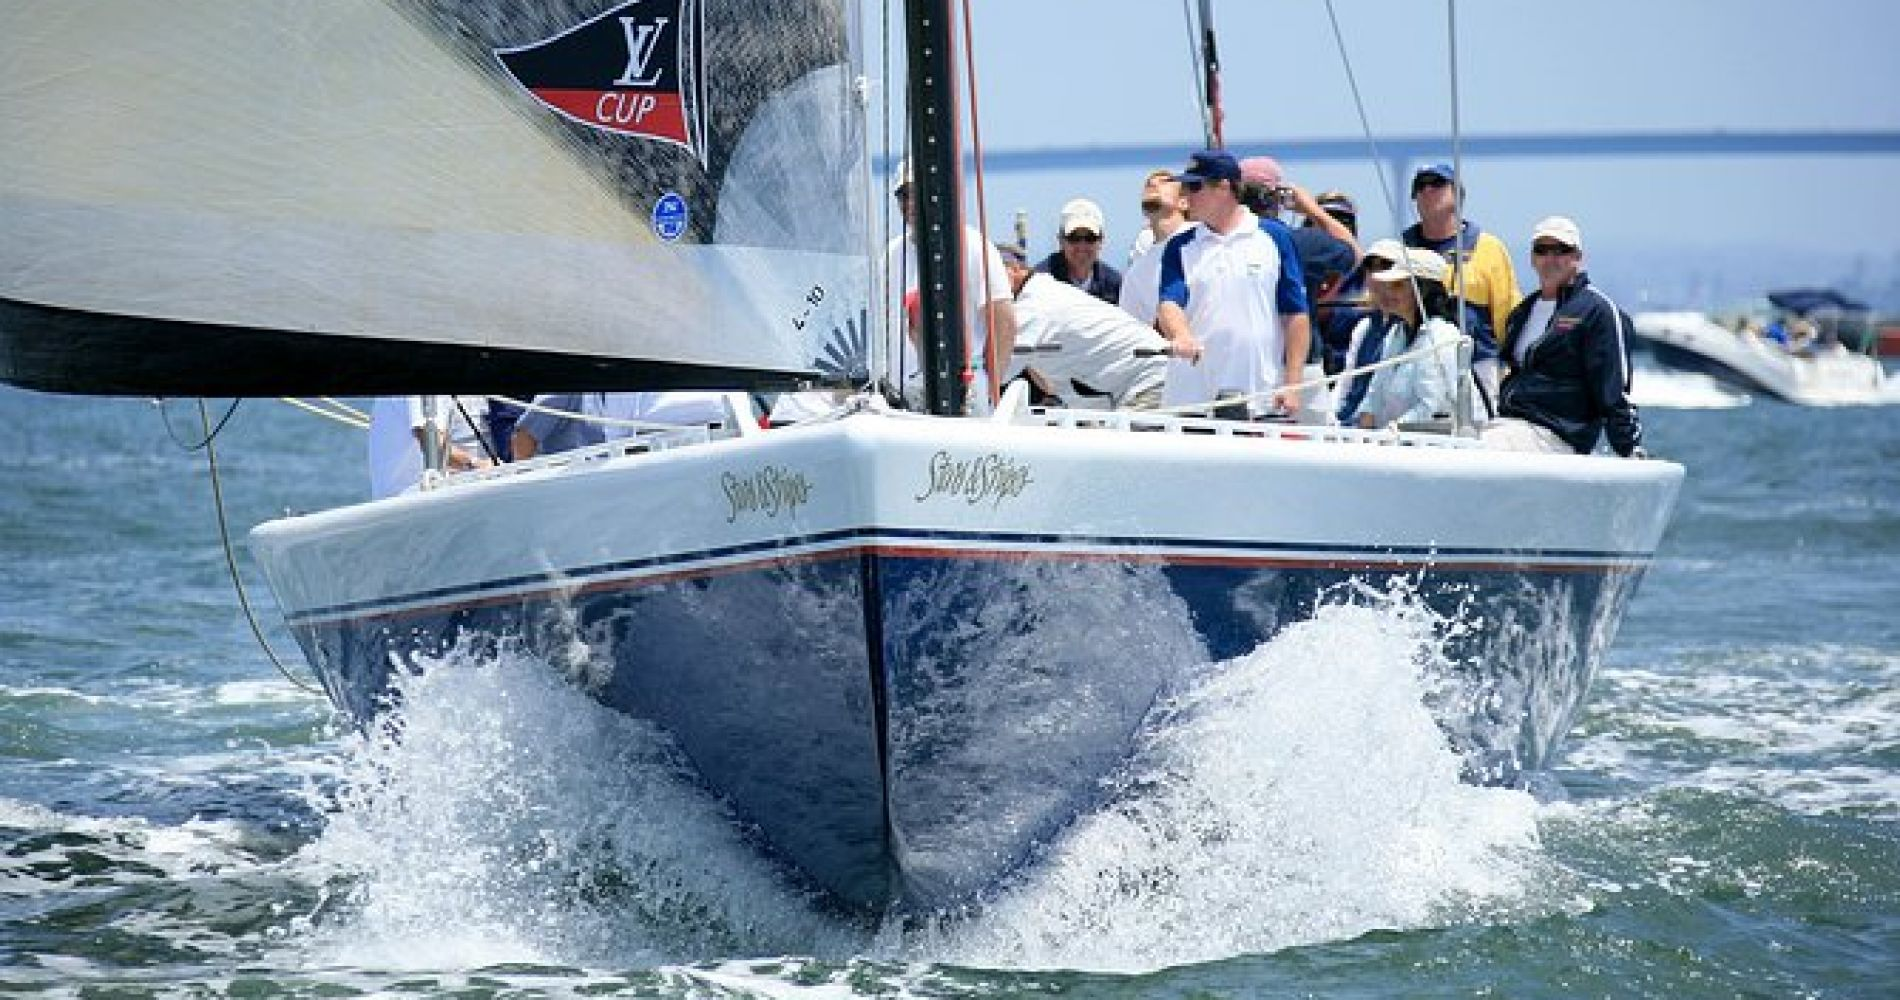 Sail Stars & Stripes America's Cup Racing Yacht in San Diego